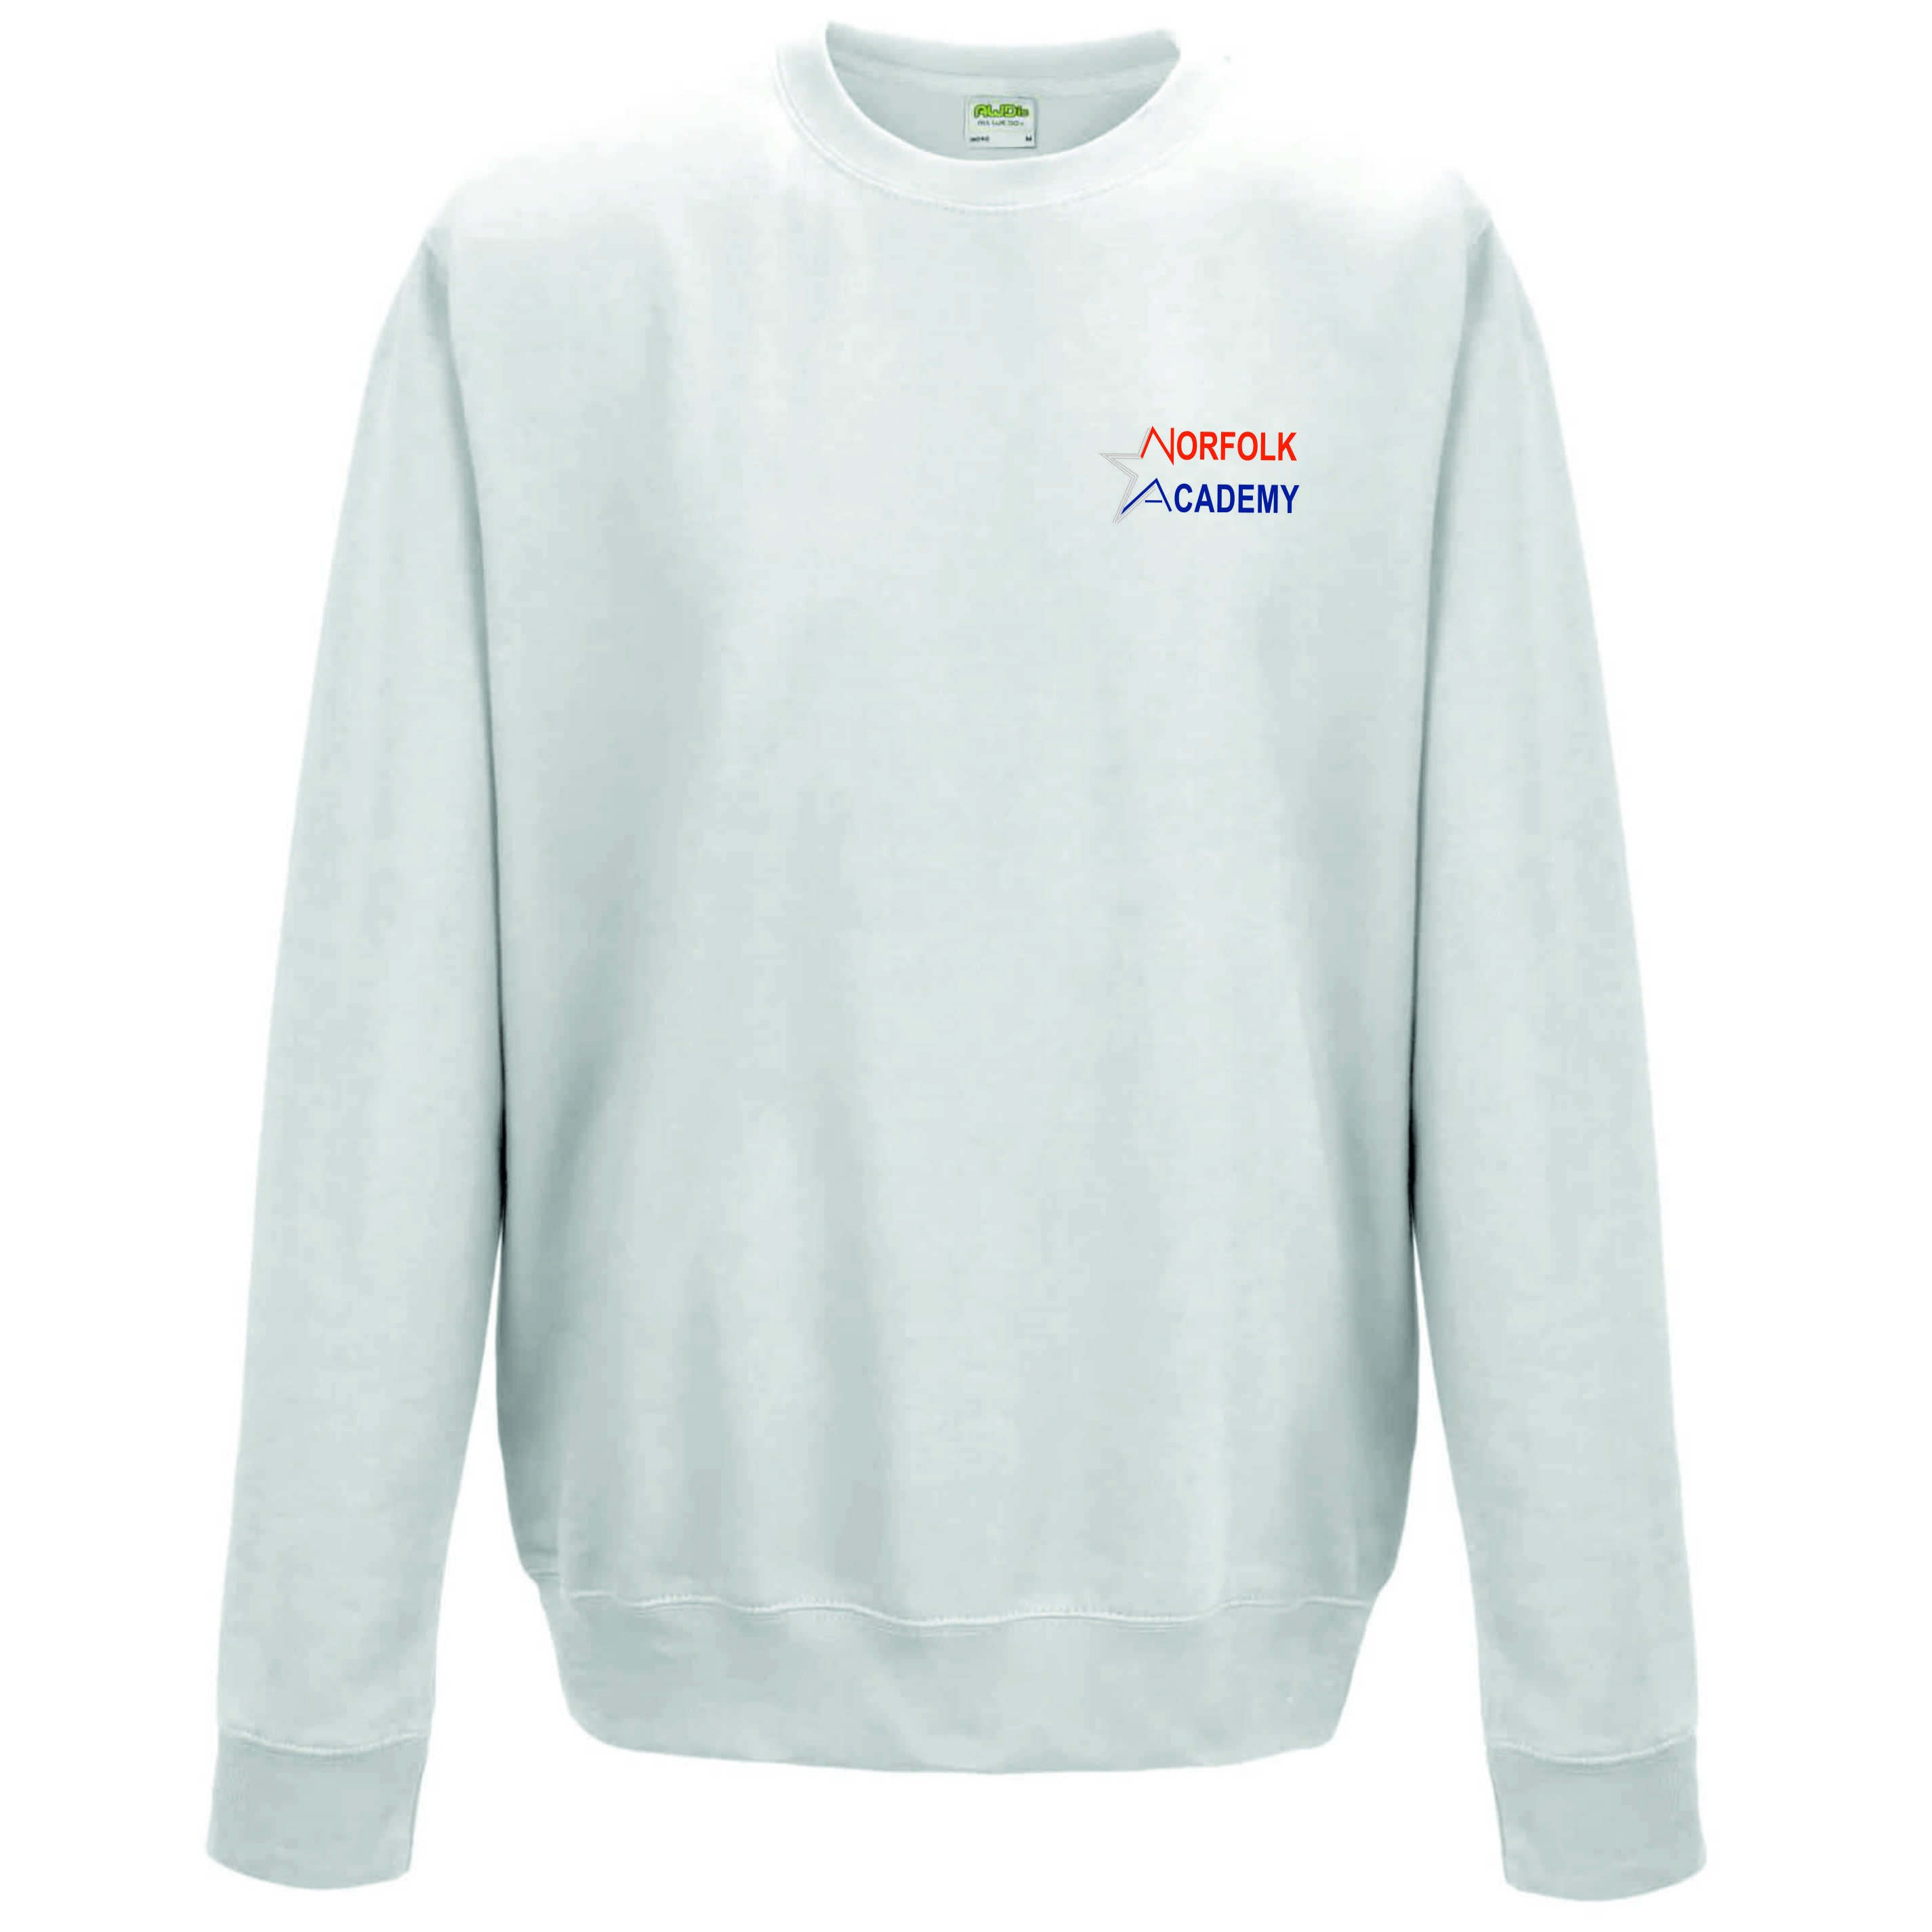 The Norfolk Academy of Gymnastics Junior Sweatshirt